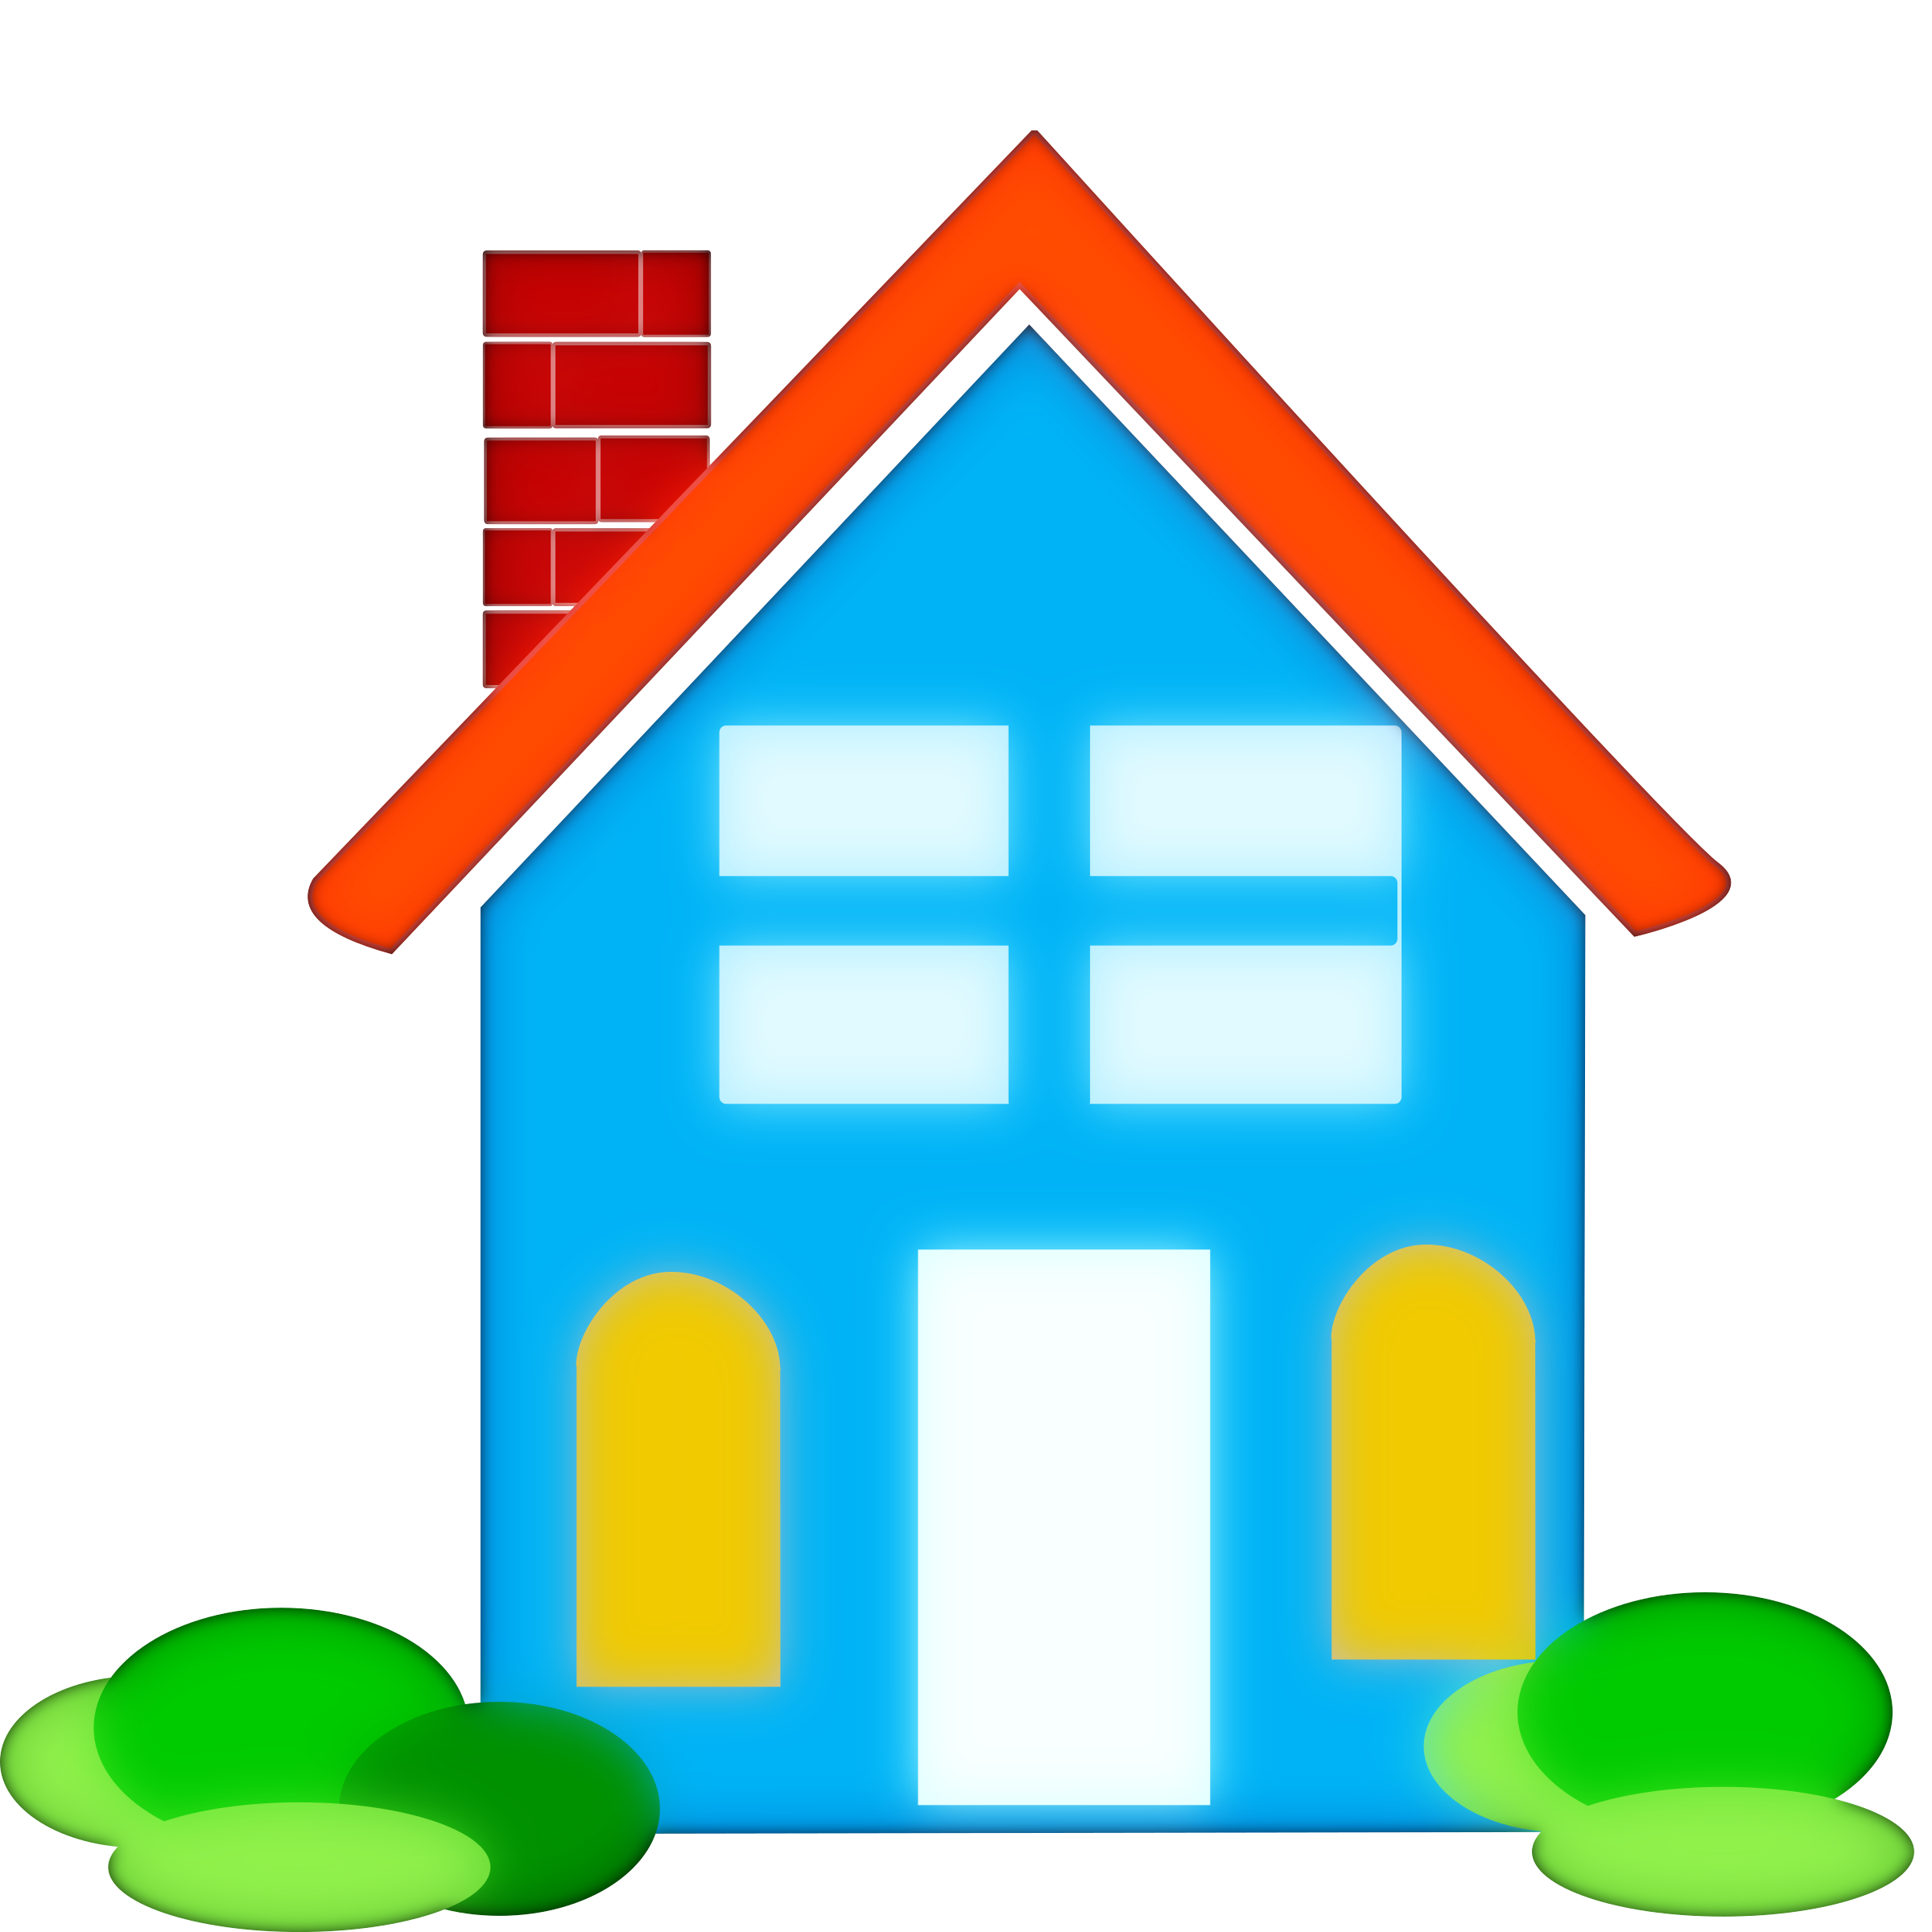 5 clipart home. Big image png